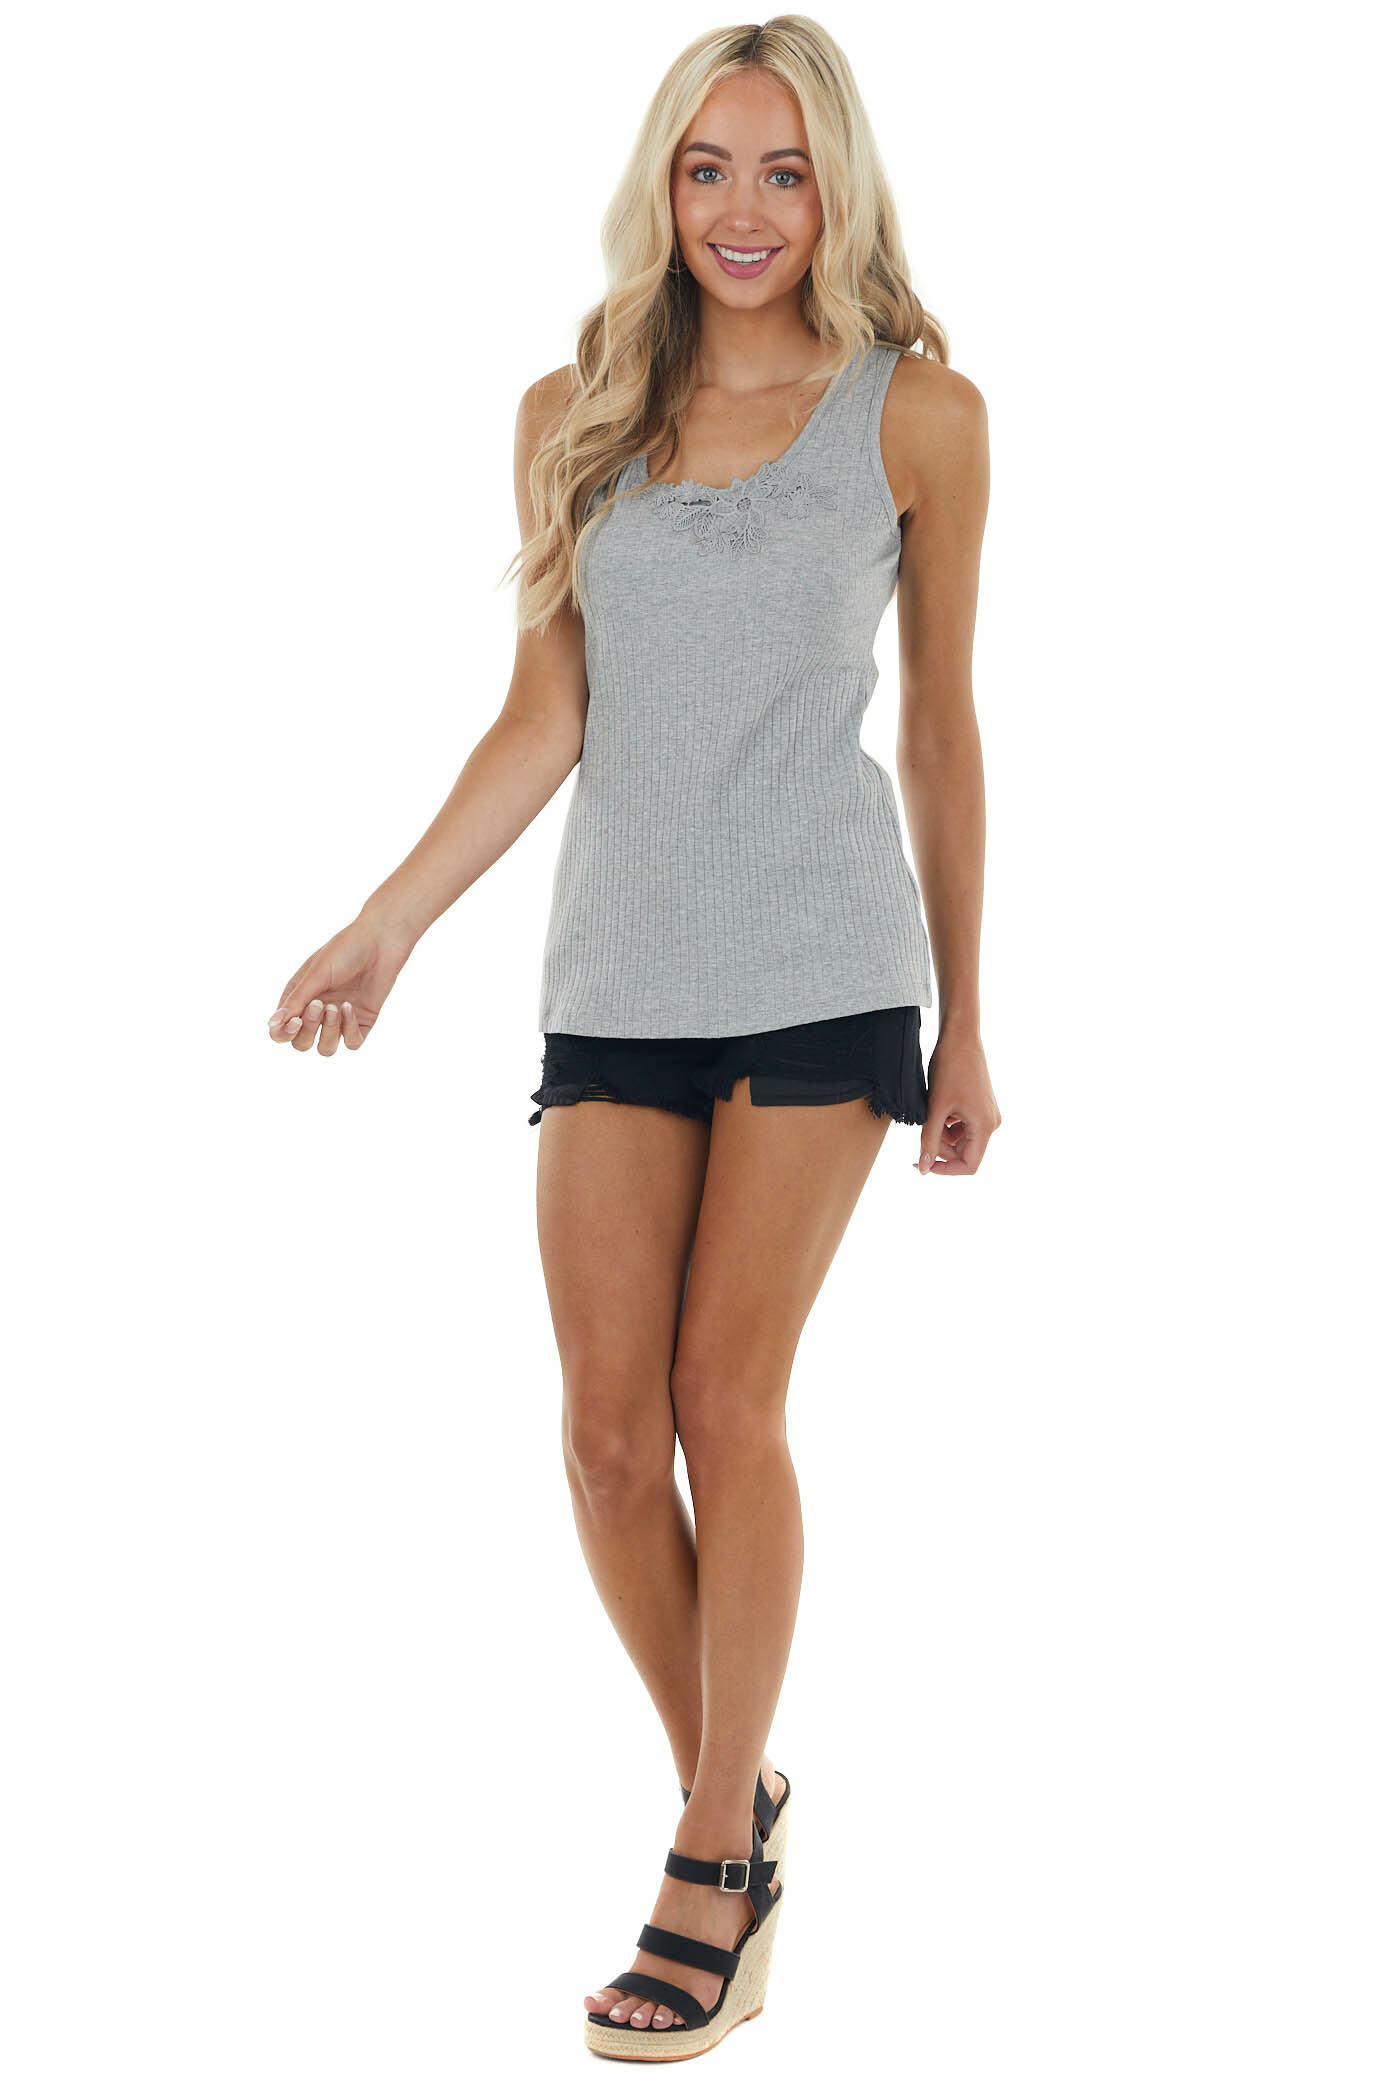 Dove Grey Ribbed Sleeveless Knit Top with Floral Lace Detail